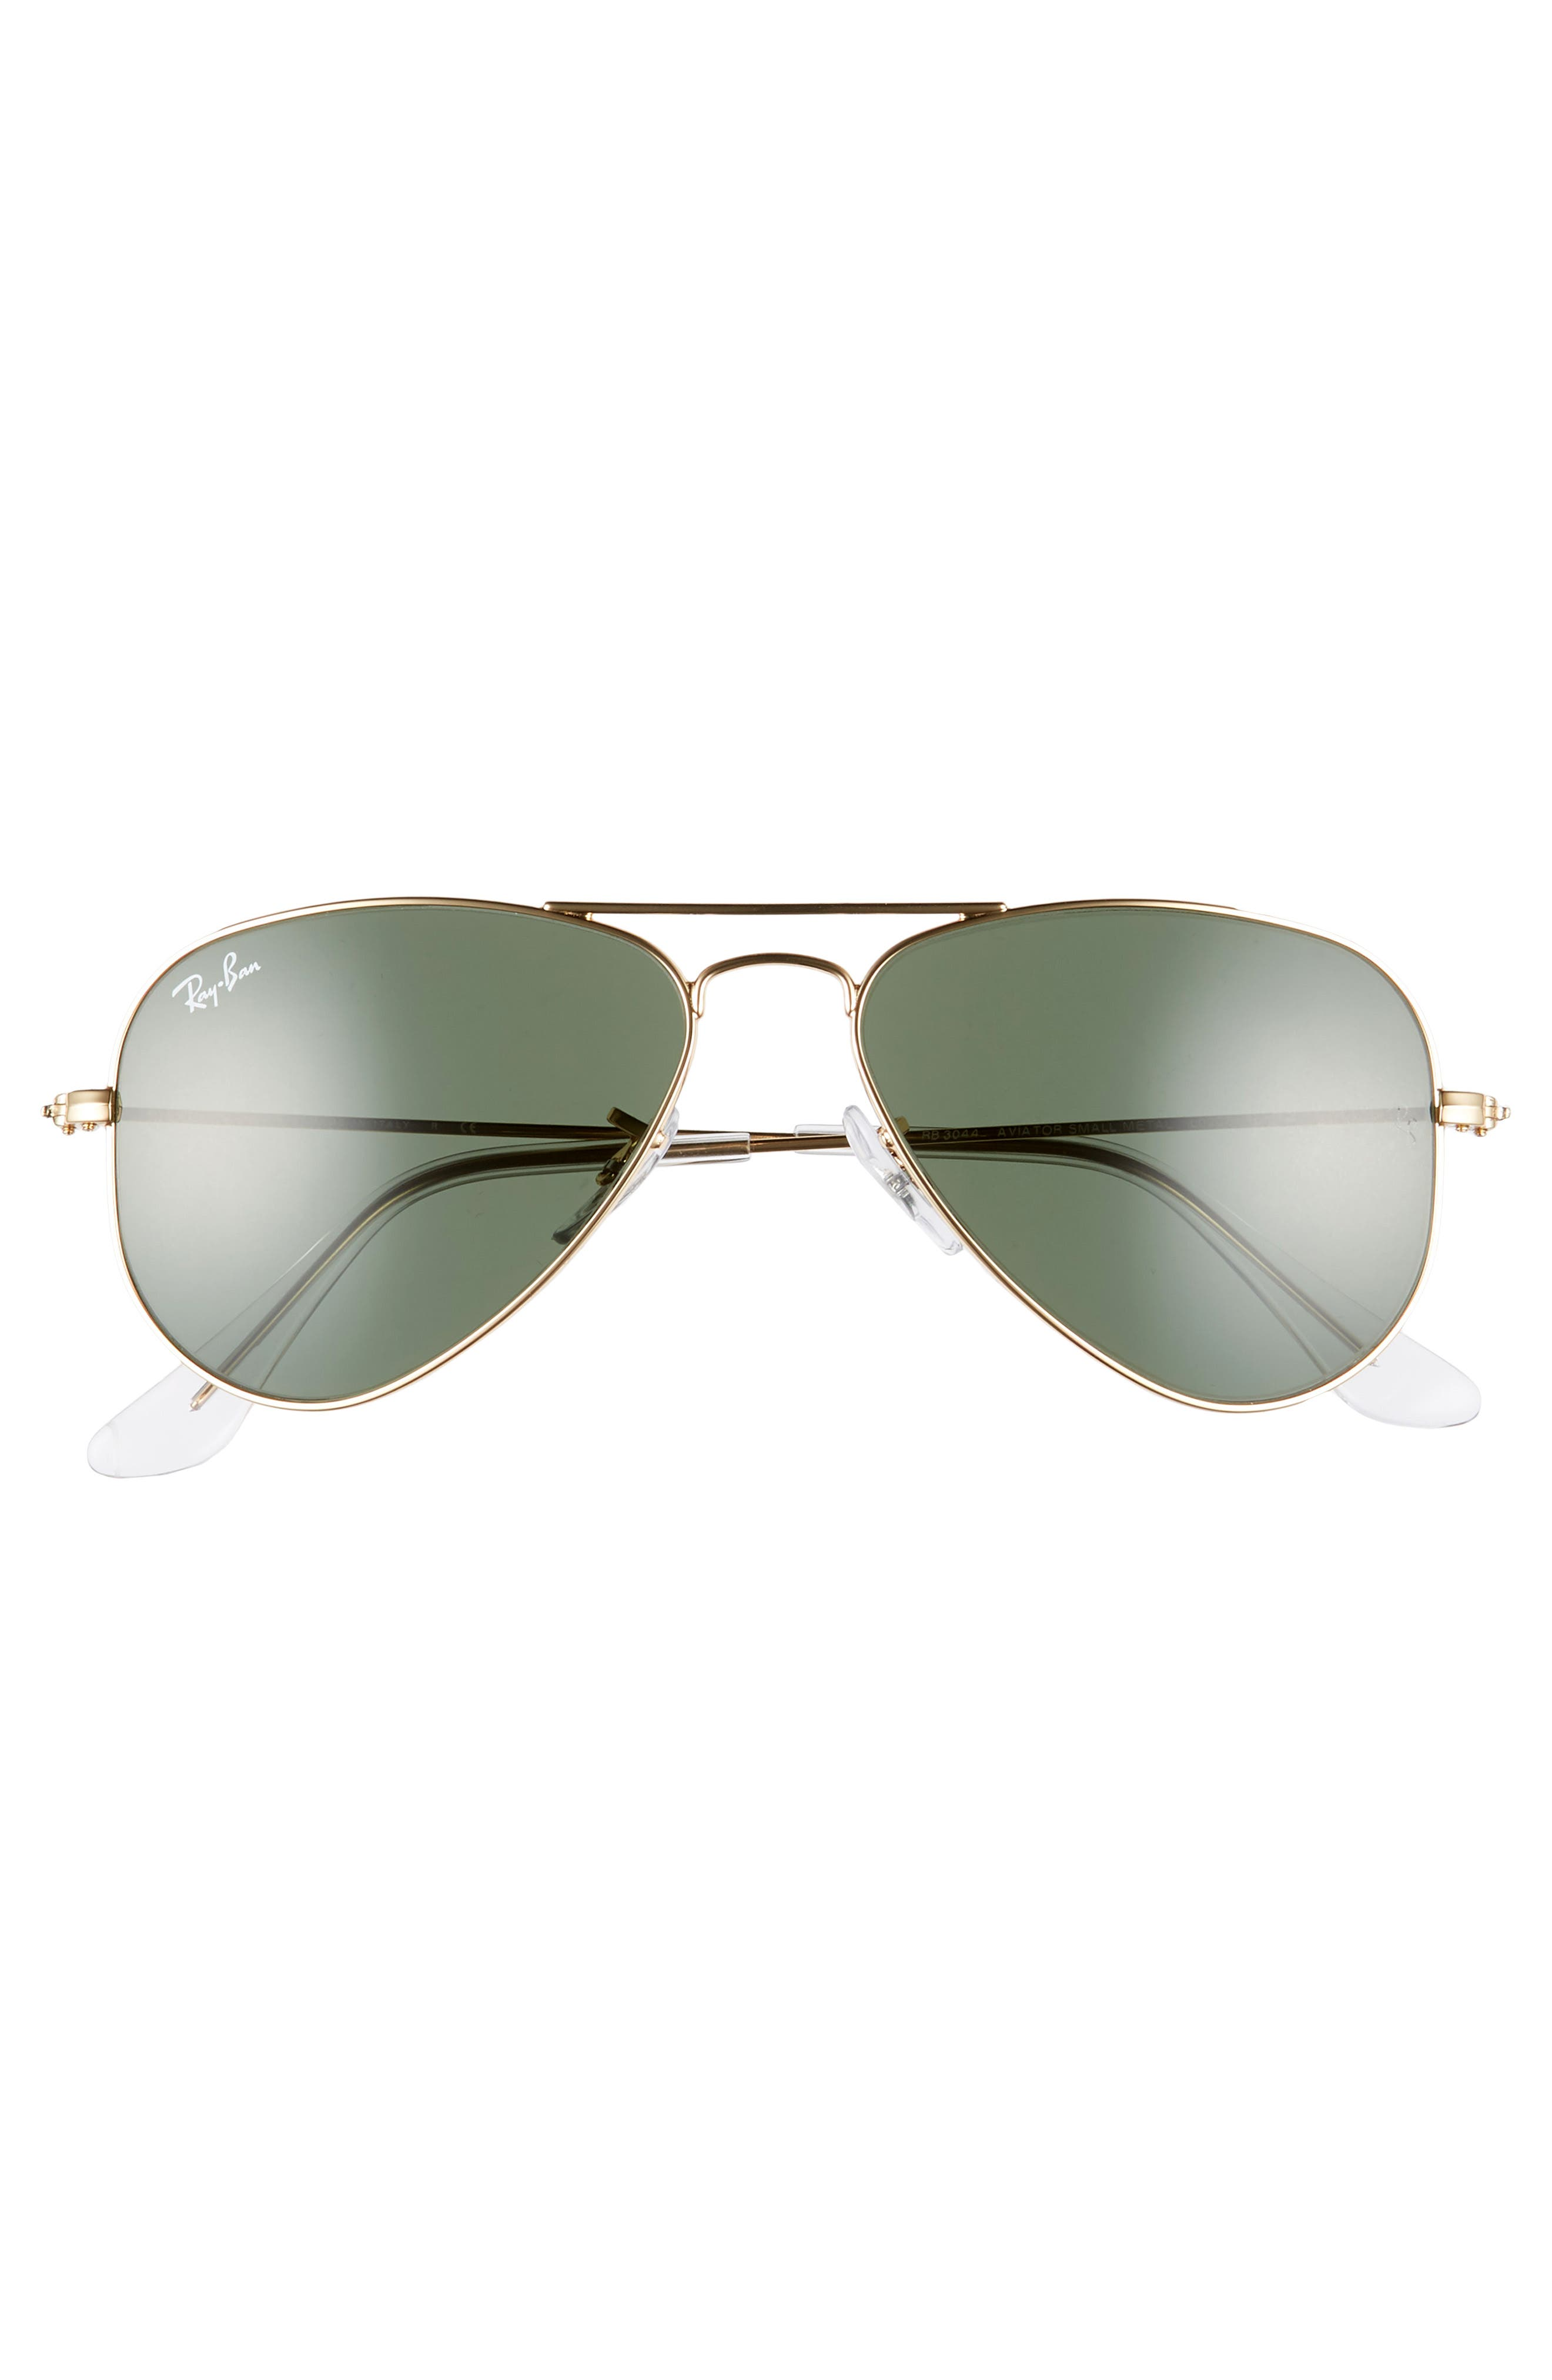 52mm Extra Small Aviator Sunglasses,                             Alternate thumbnail 3, color,                             GOLD/ GREEN SOLID